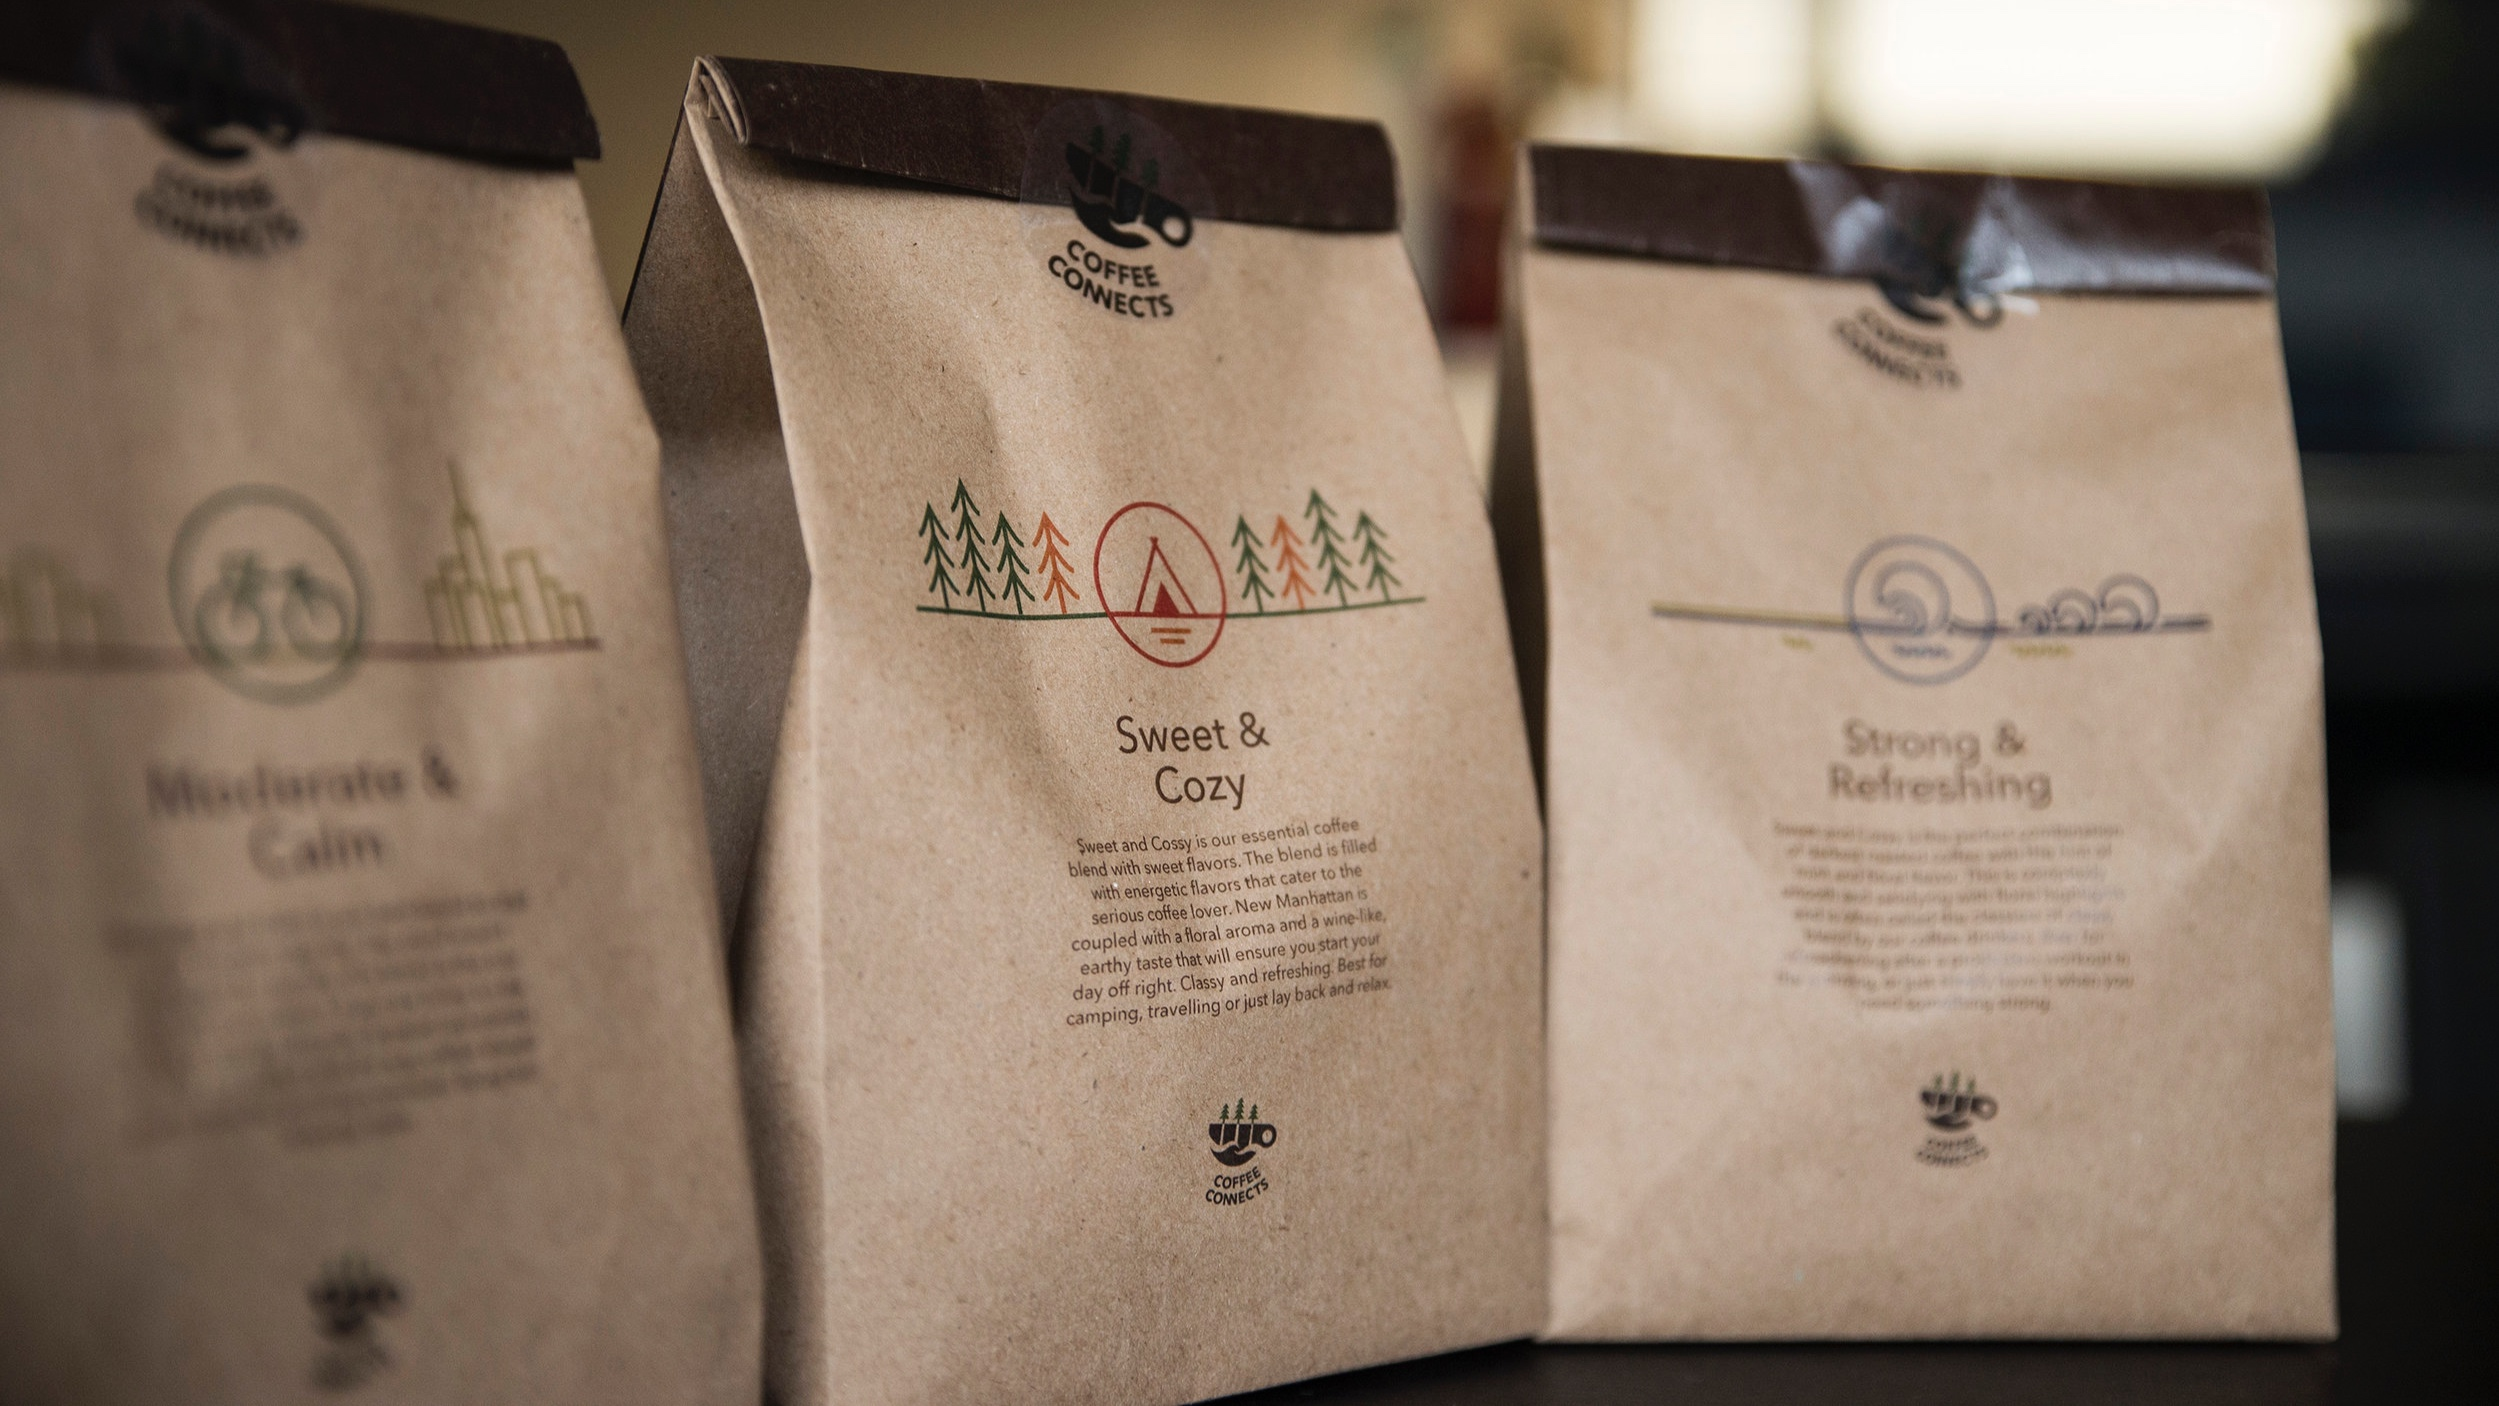 Coffee connects - Branding + Packaging design